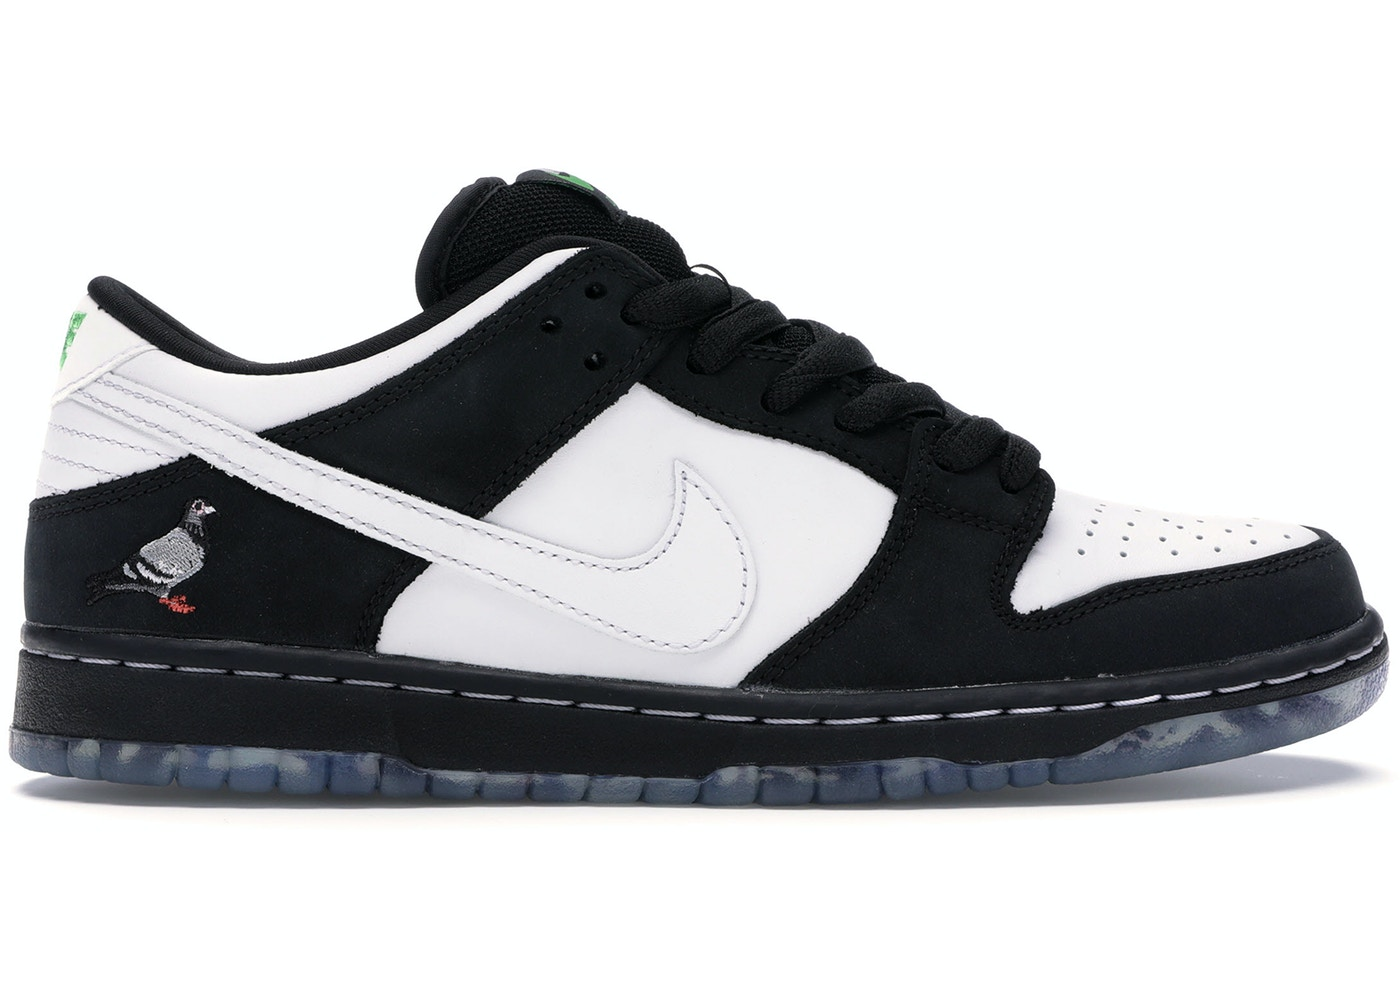 new products e7494 6b019 Buy Nike SB Shoes   Deadstock Sneakers